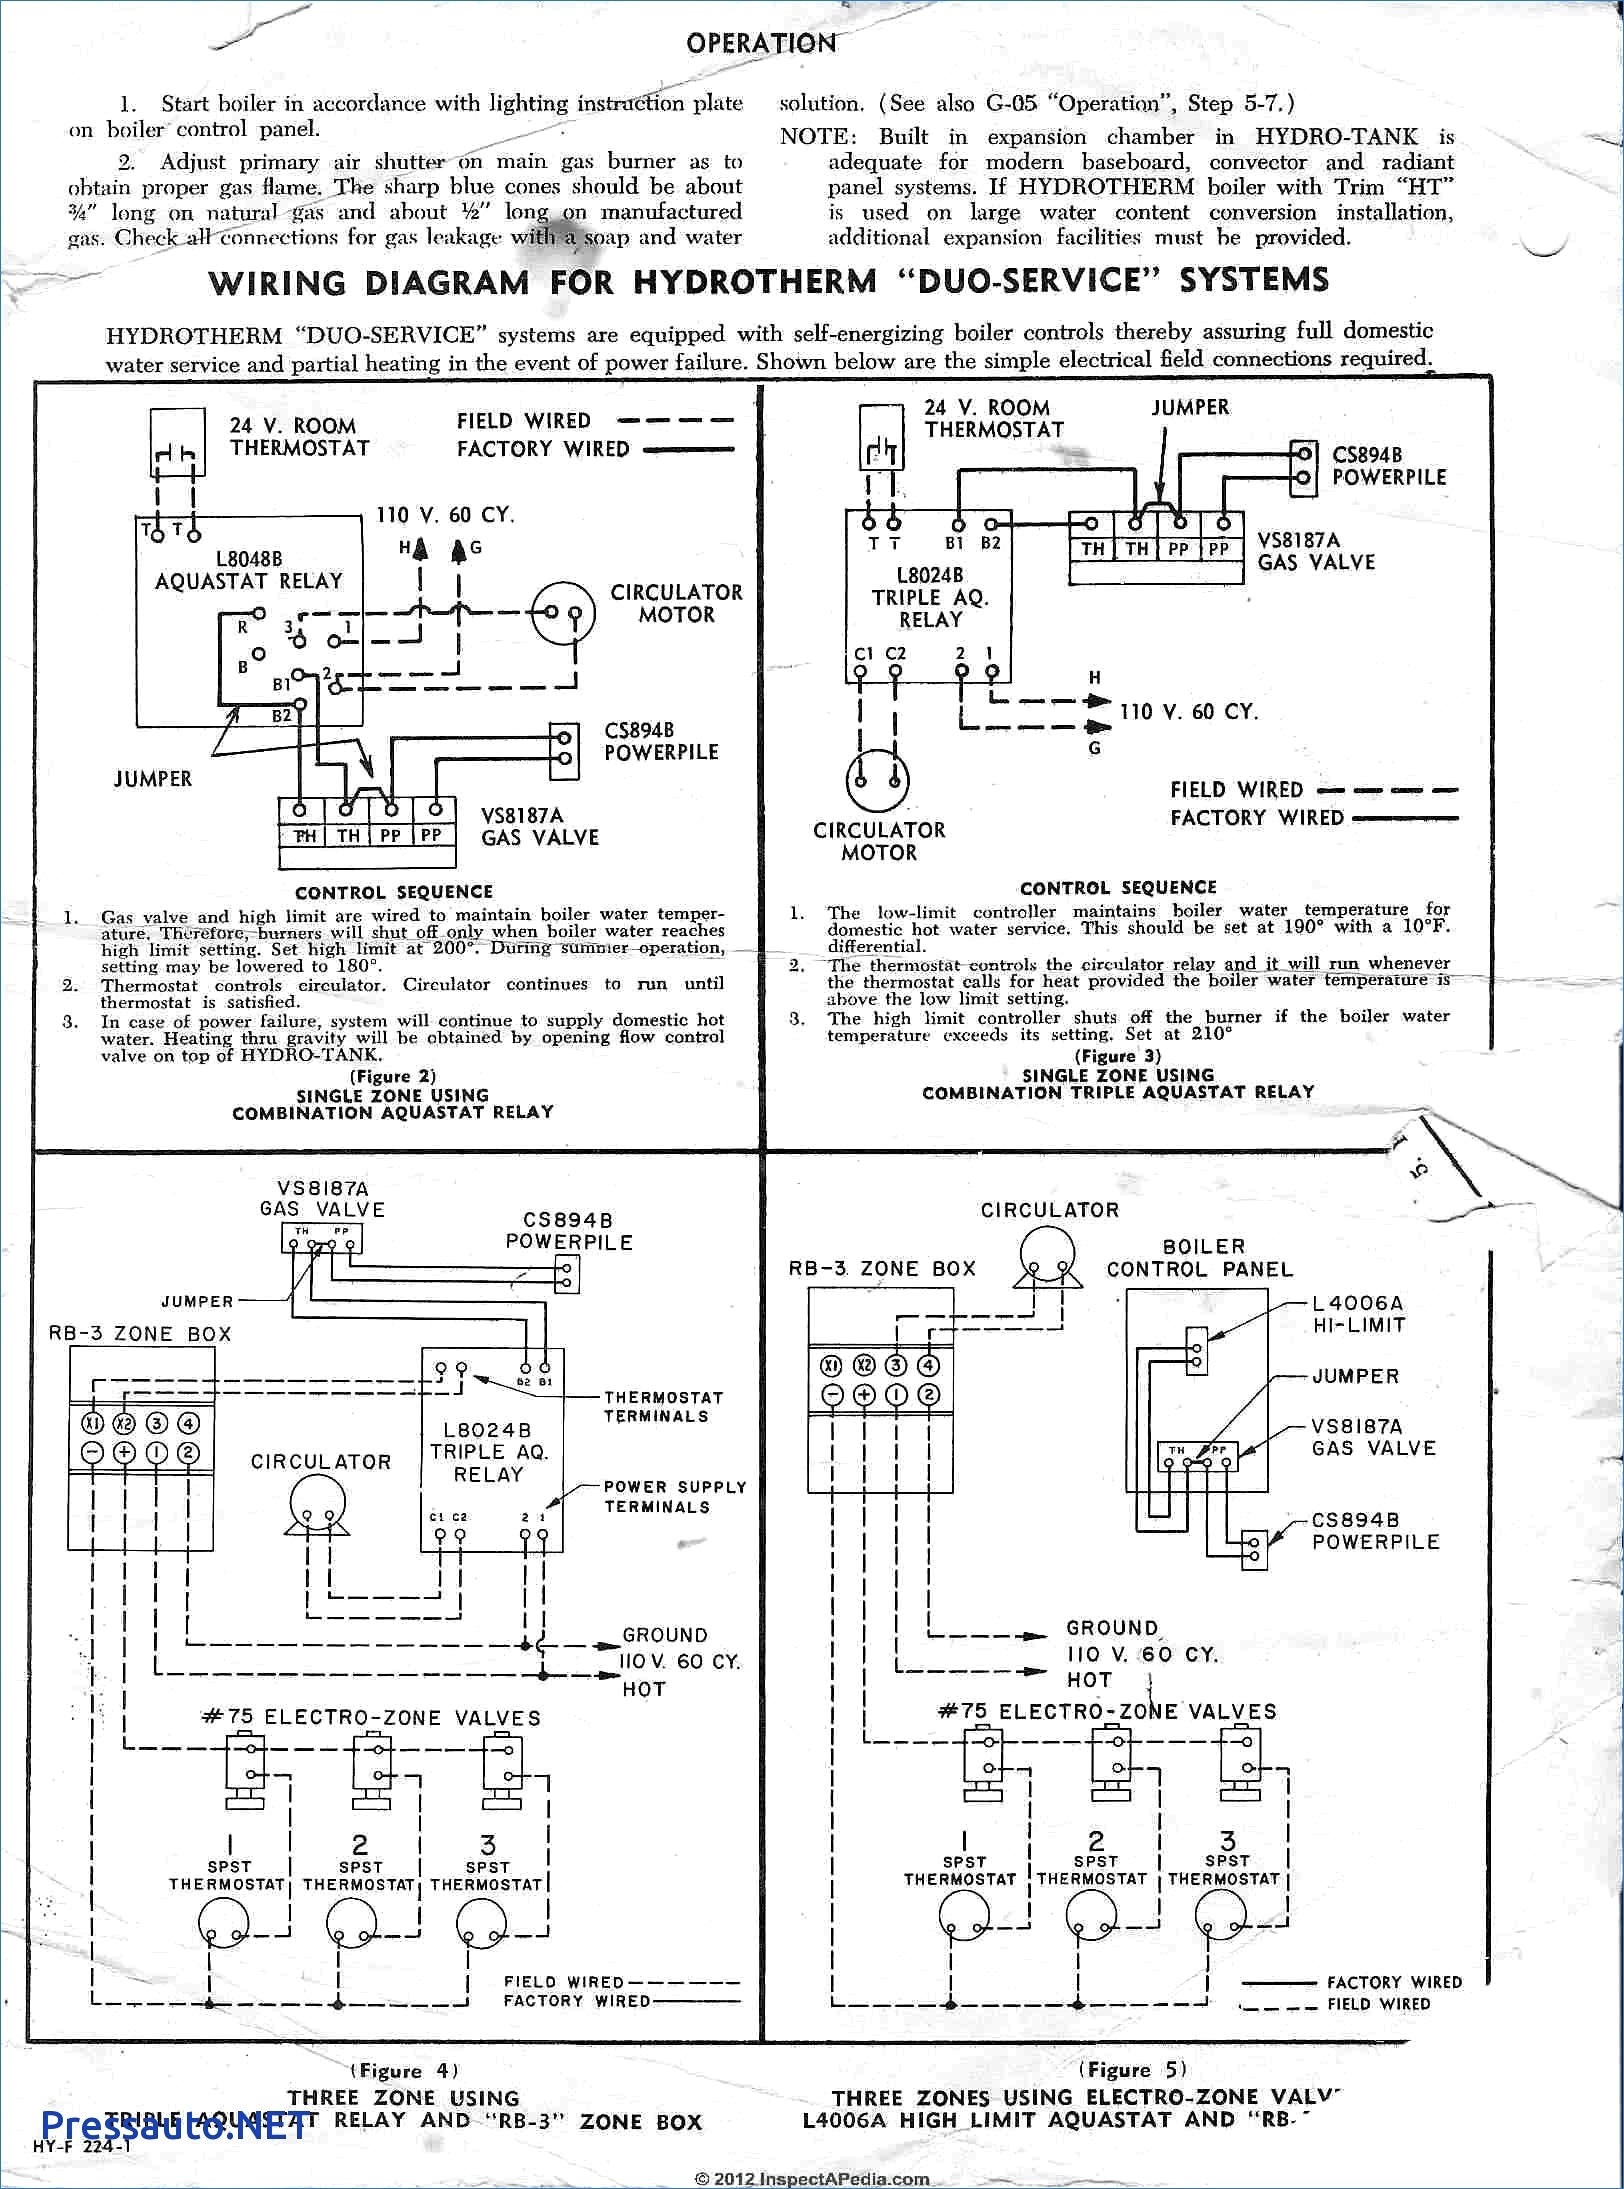 White Rodgers Gas Valve Wiring Diagram - All Wiring Diagram - White Rogers Thermostat Wiring Diagram